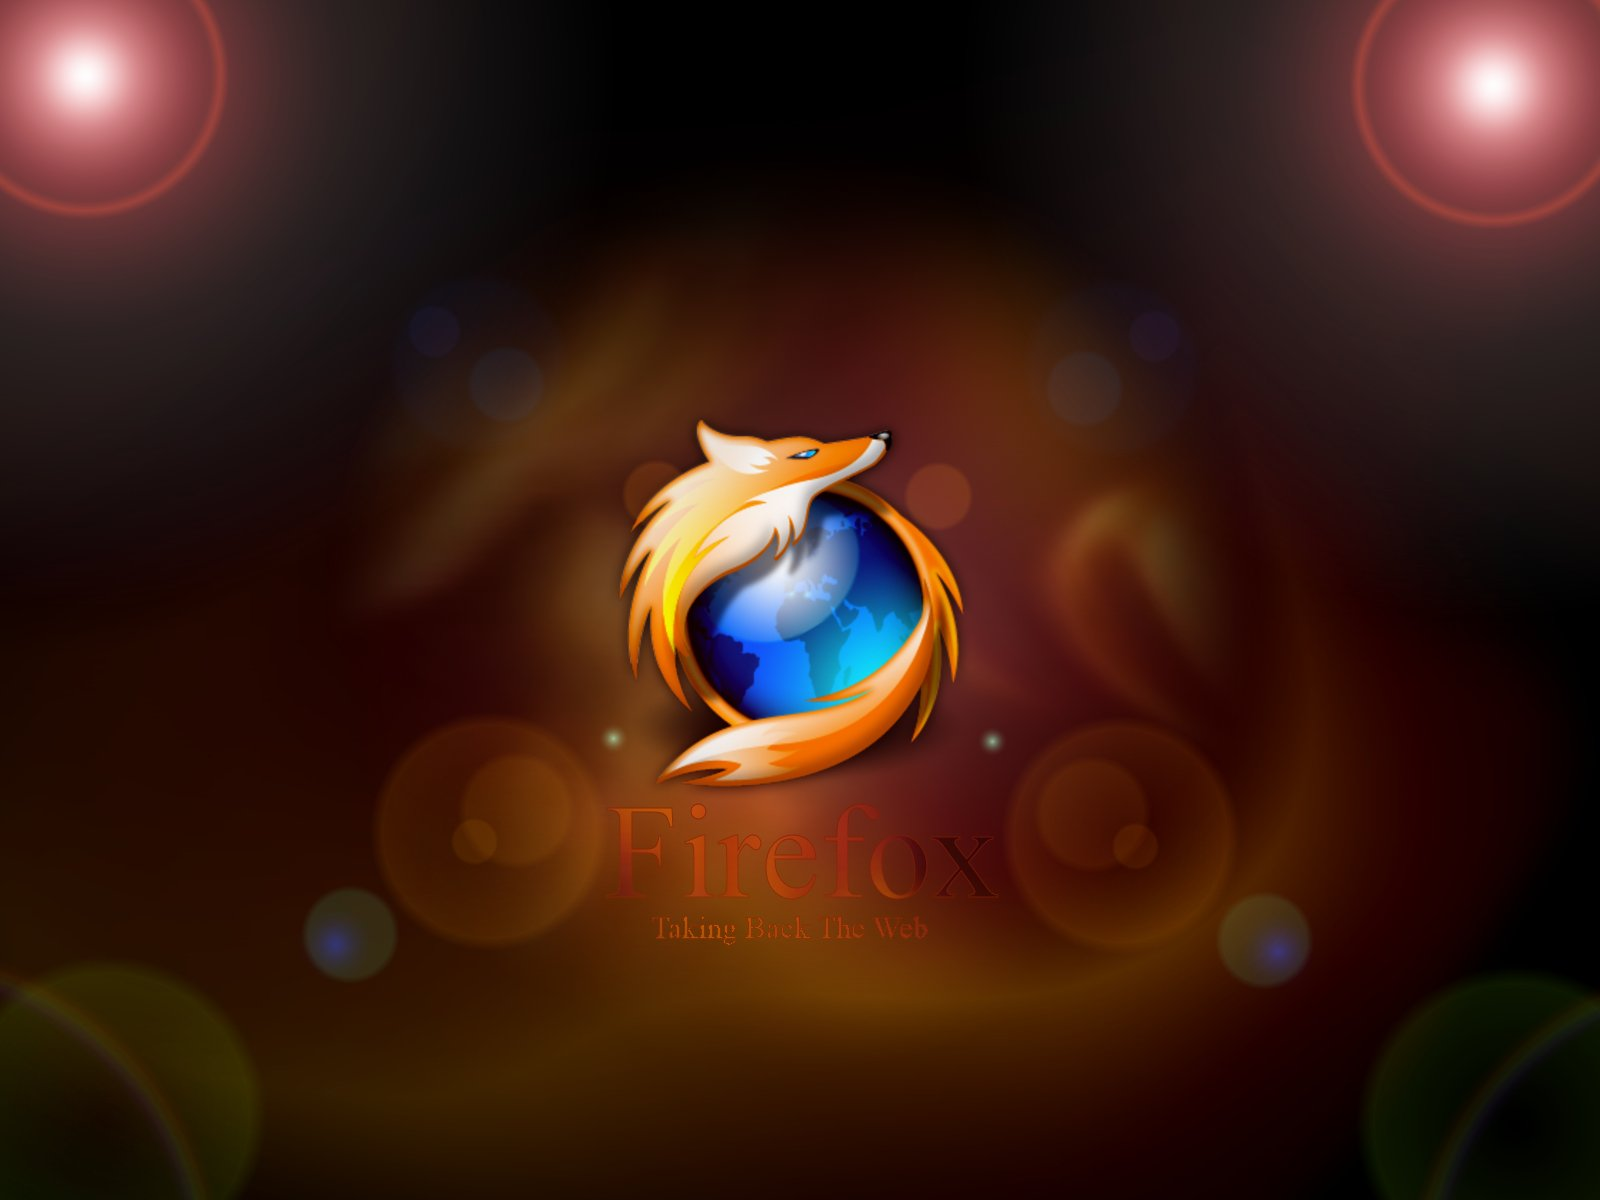 free wallpapers firefox - photo #15